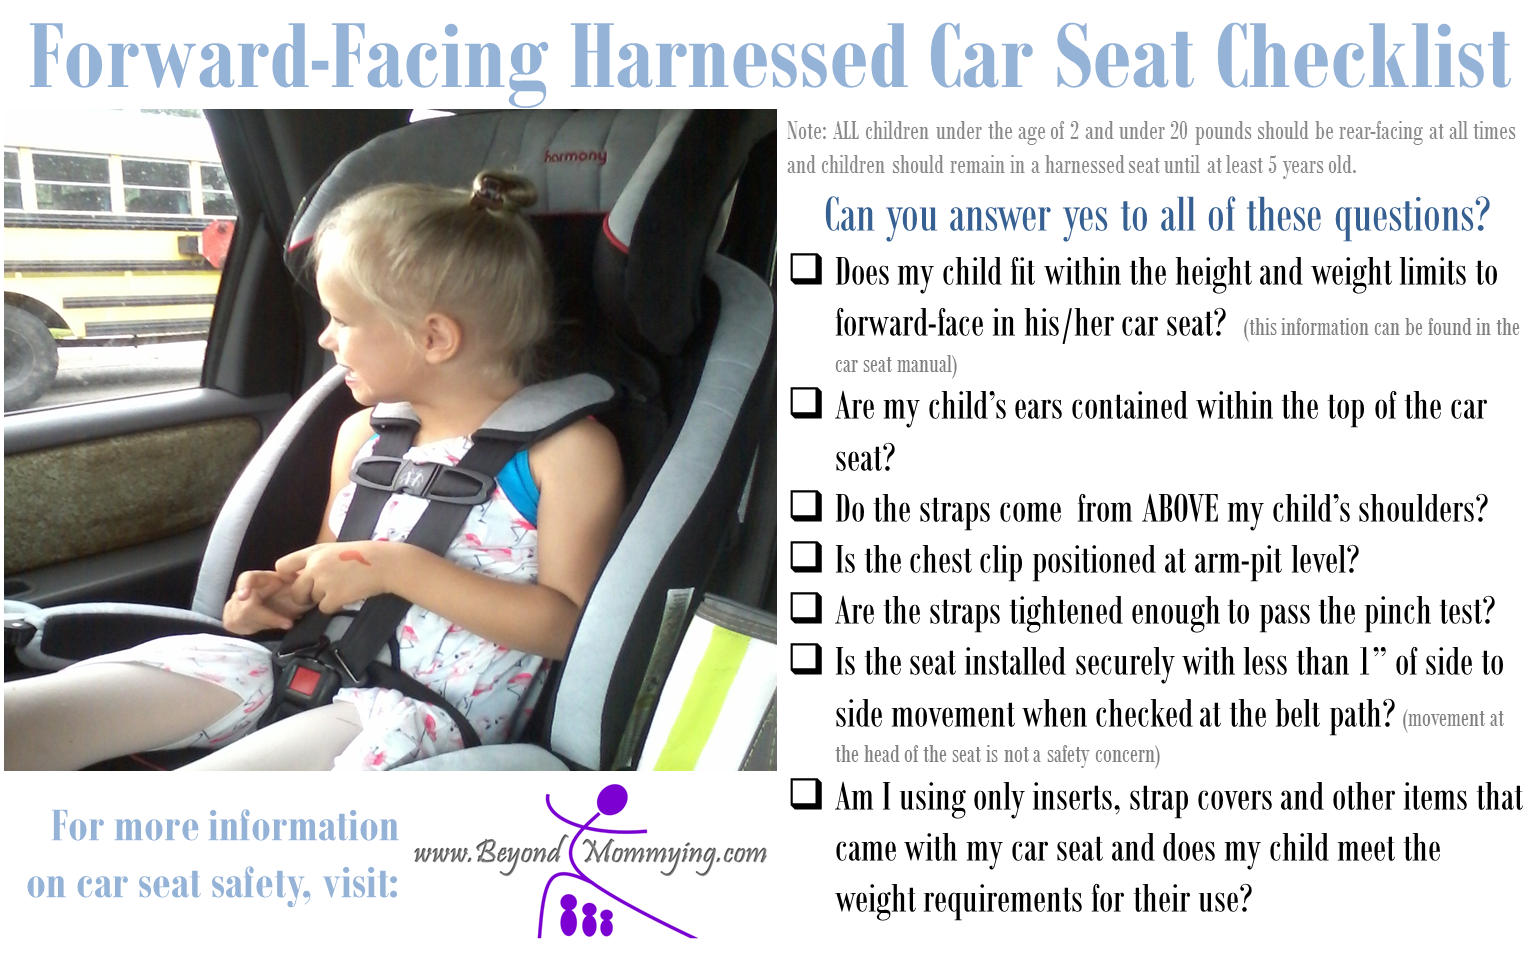 Car Seat Safety: Checklists for Proper Car Seat Use | Car seat ...